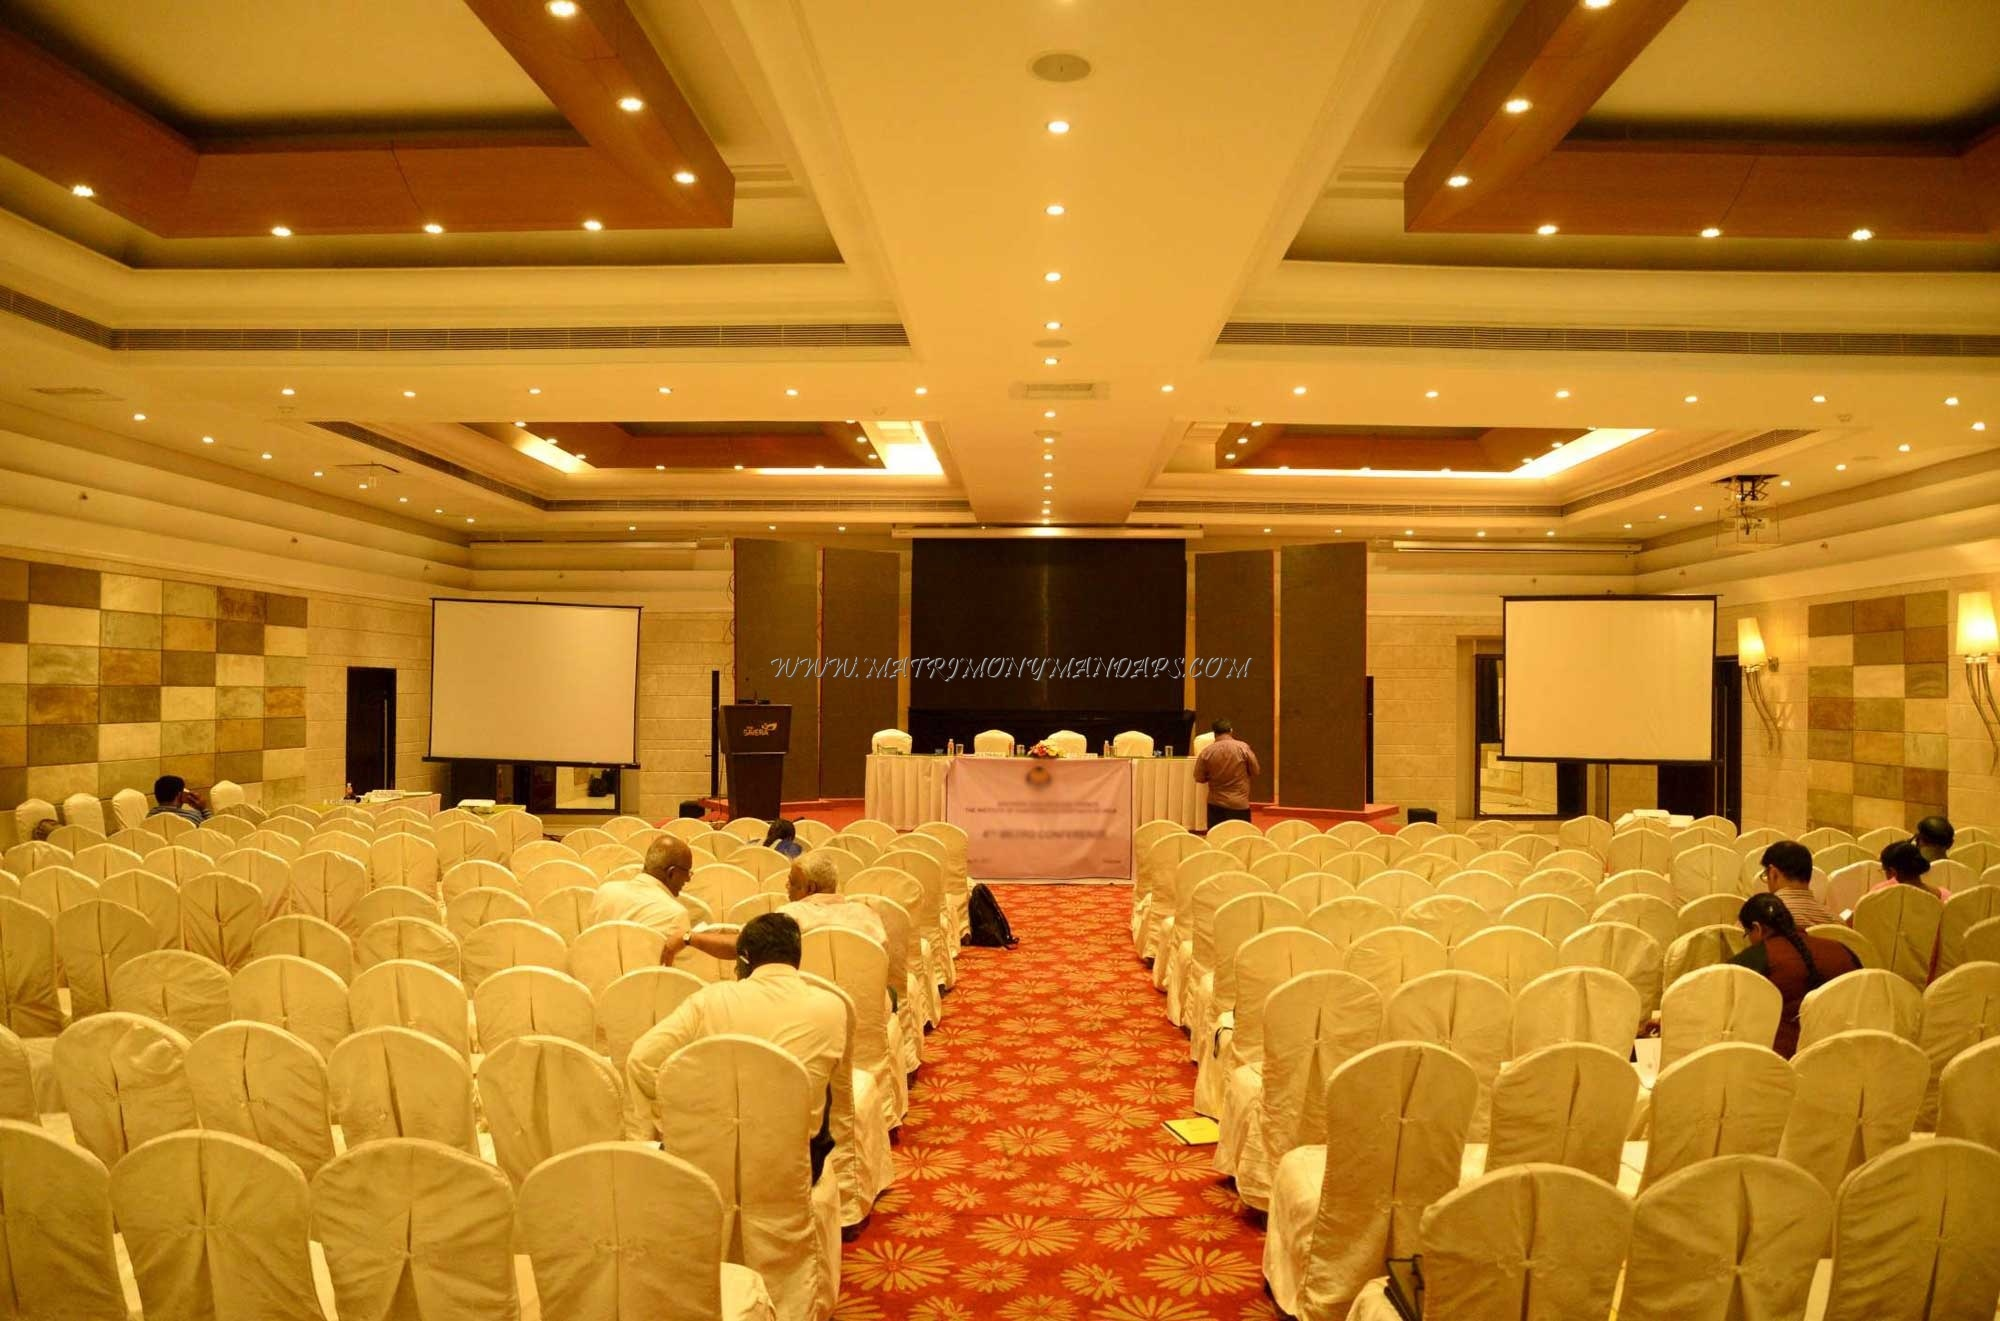 Find the availability of the Samavesh 1 The Savera (A/C) in Mylapore, Chennai and avail special offers